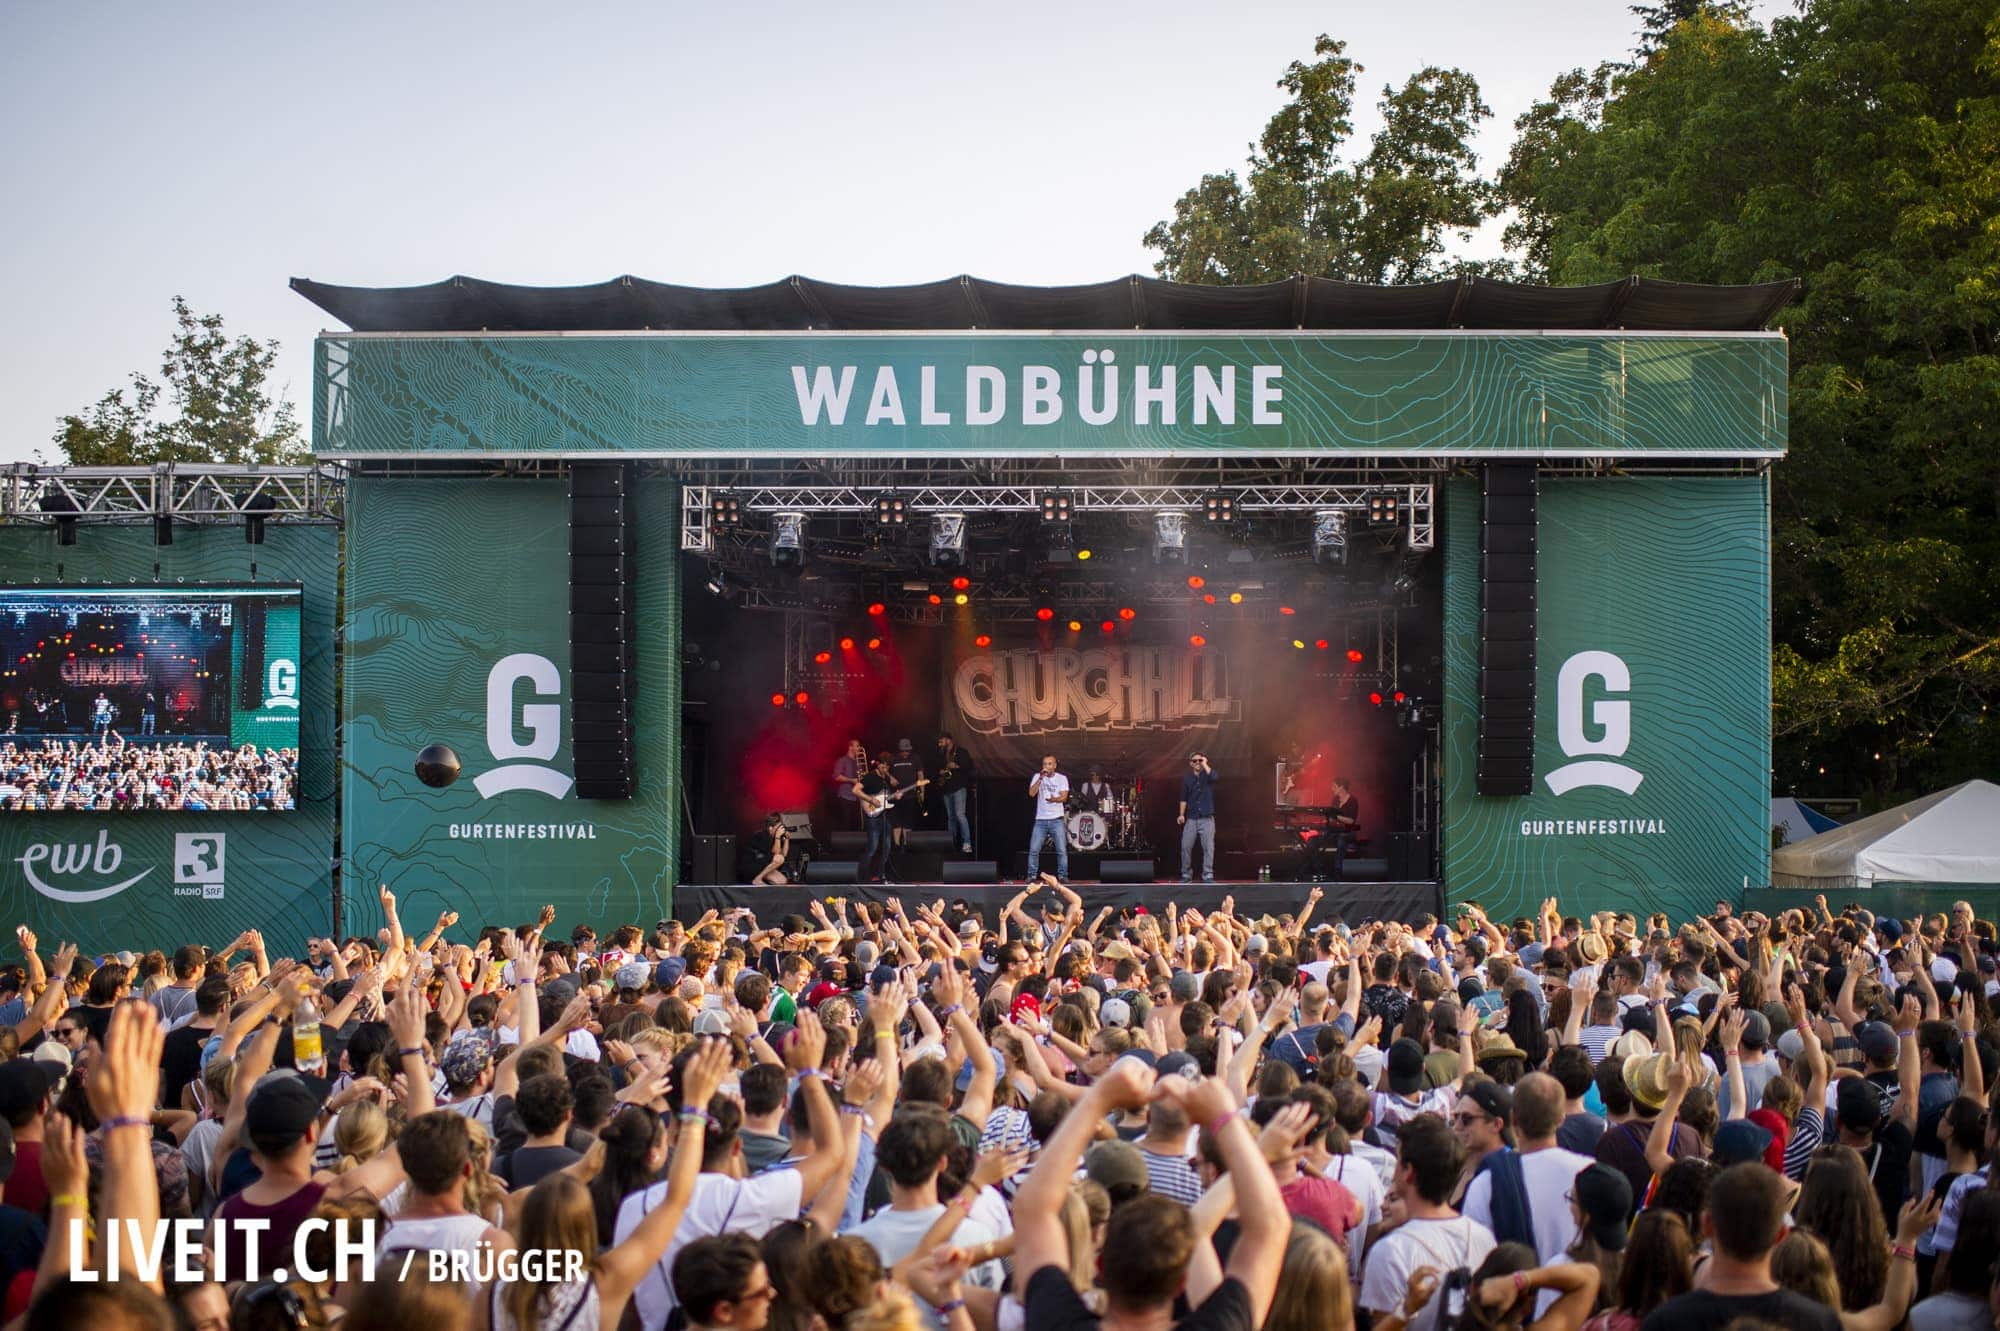 Churchhill Gurtenfestival 2018 in Bern. (Dominic Bruegger for Gurtenfestival)